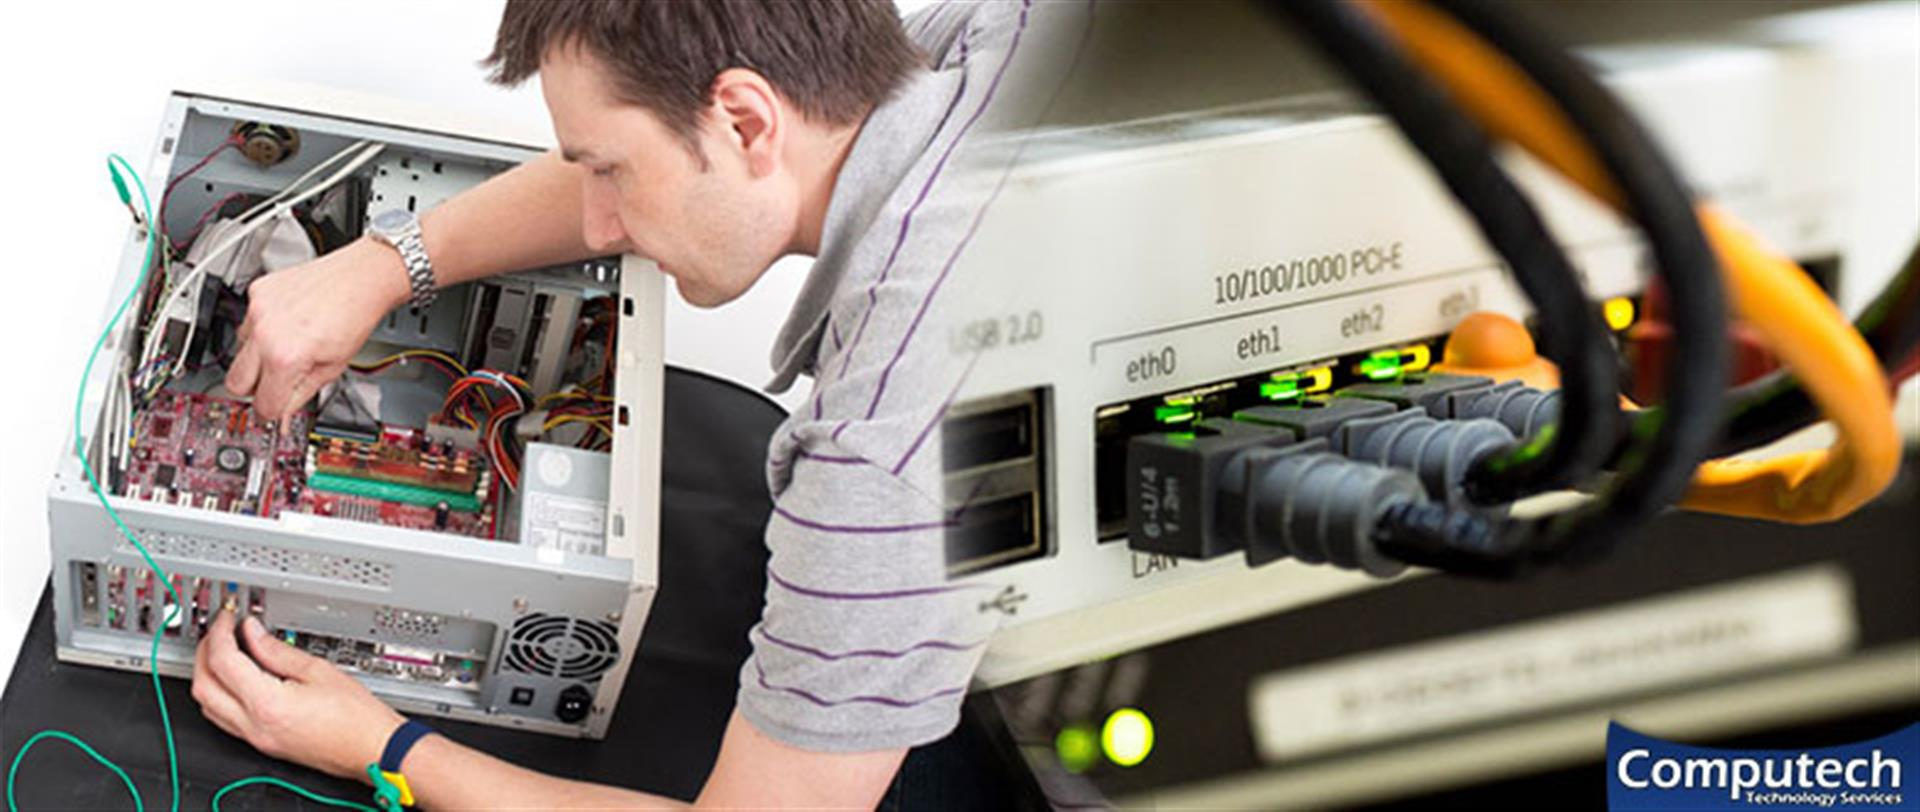 Tyrone Georgia On-Site Computer PC & Printer Repairs, Network, Voice & Data Cabling Services